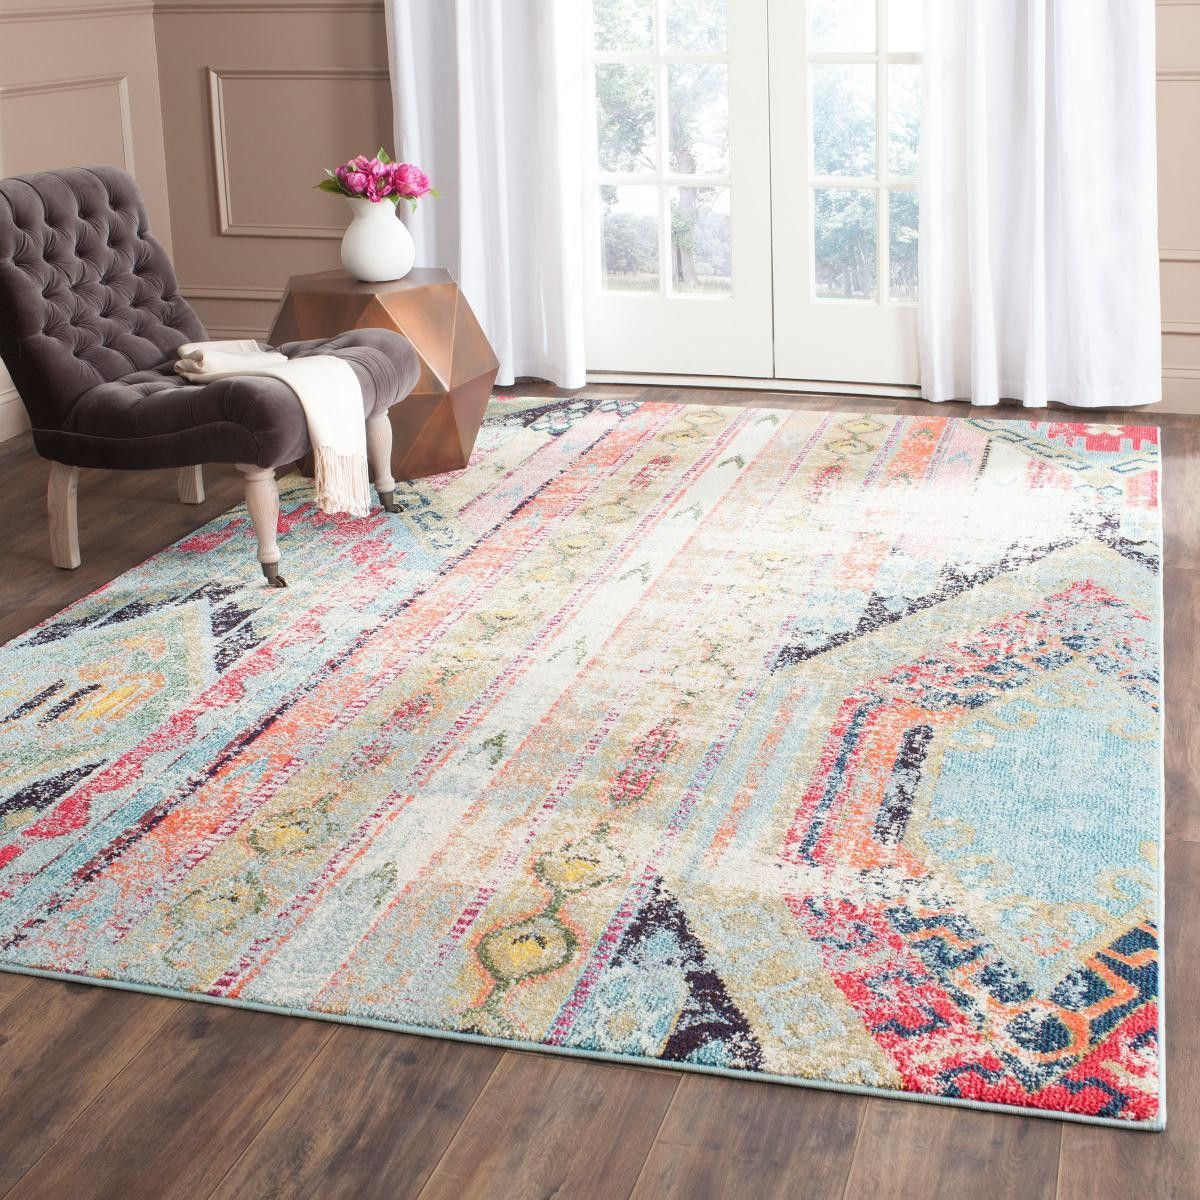 Free Spirited And Vibrantly Colored, Monaco Collection Rugs Bring  Bohemian Chic Flair To